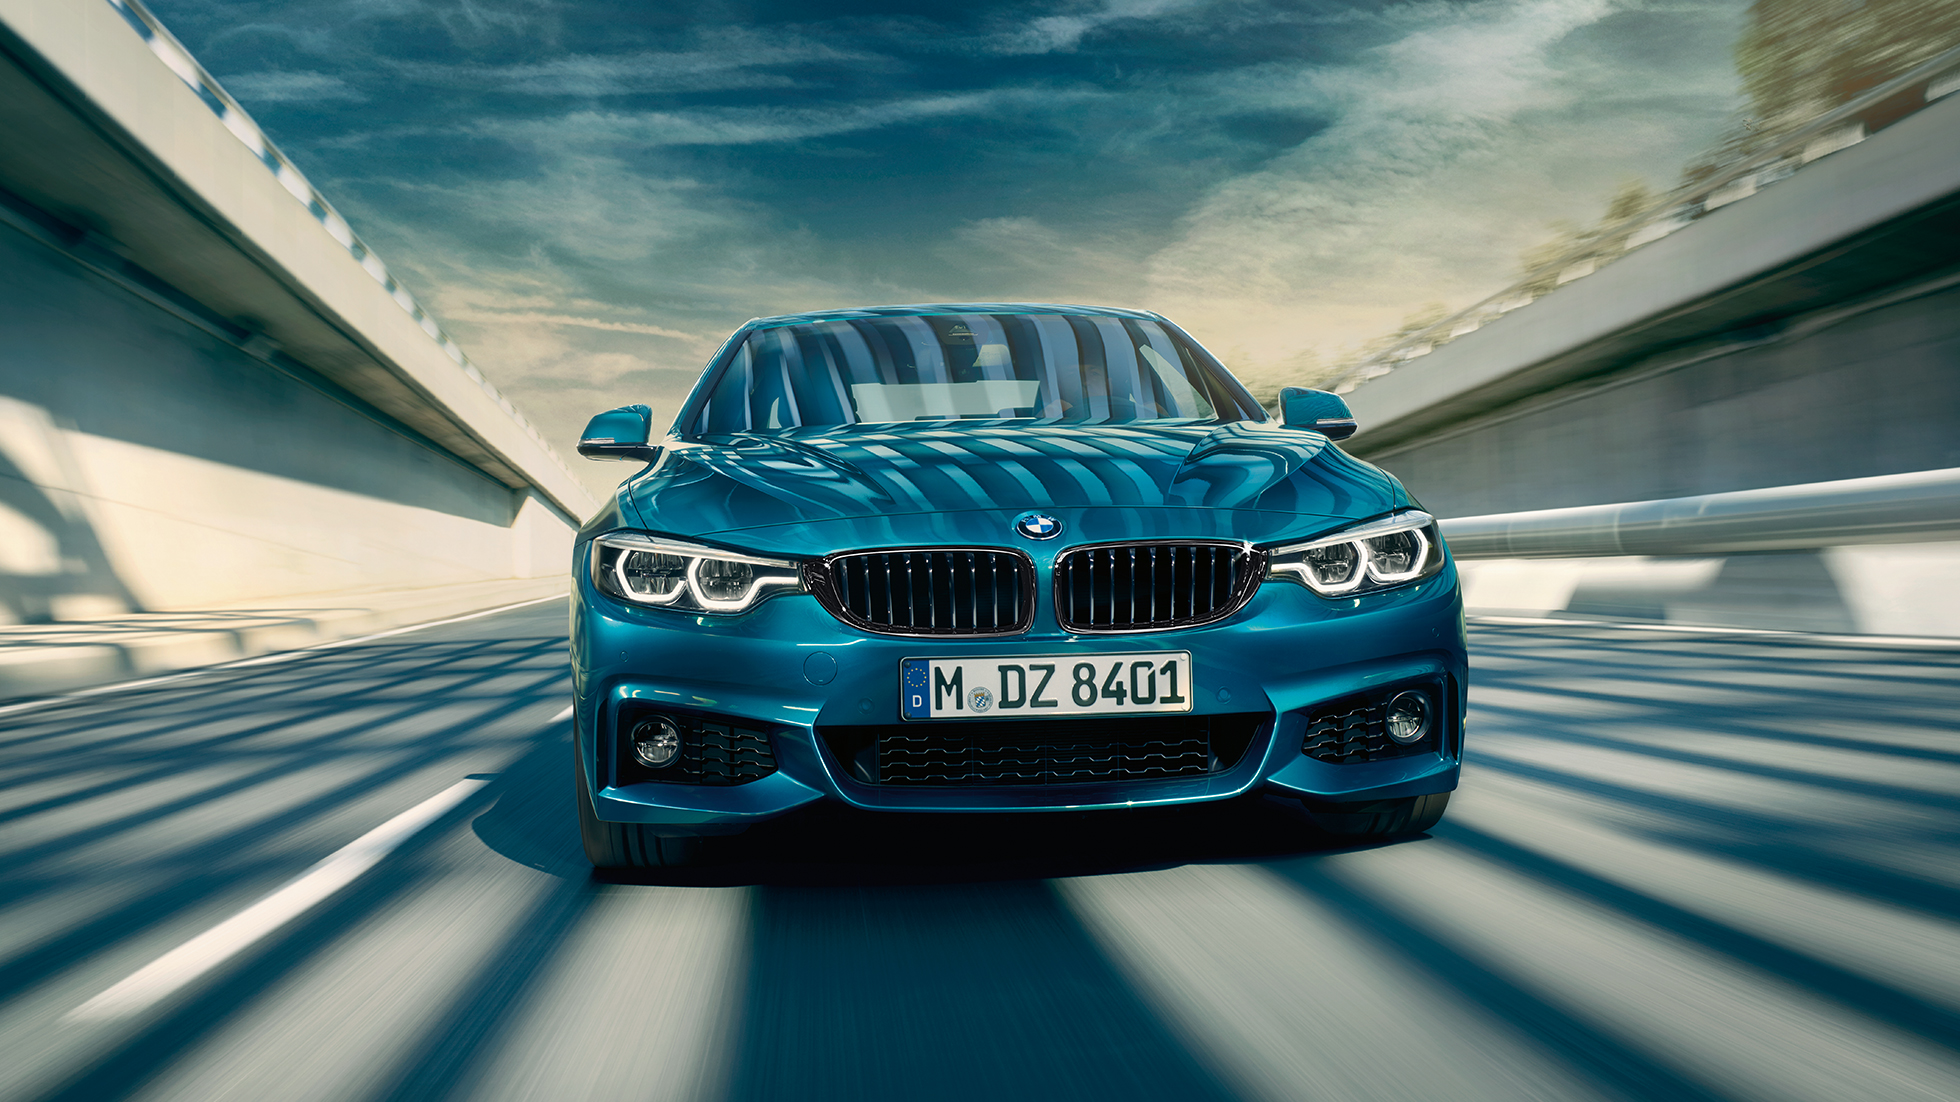 bmw-4-series-coupe-inspire-mg-exterior-interior-design-desktop-01